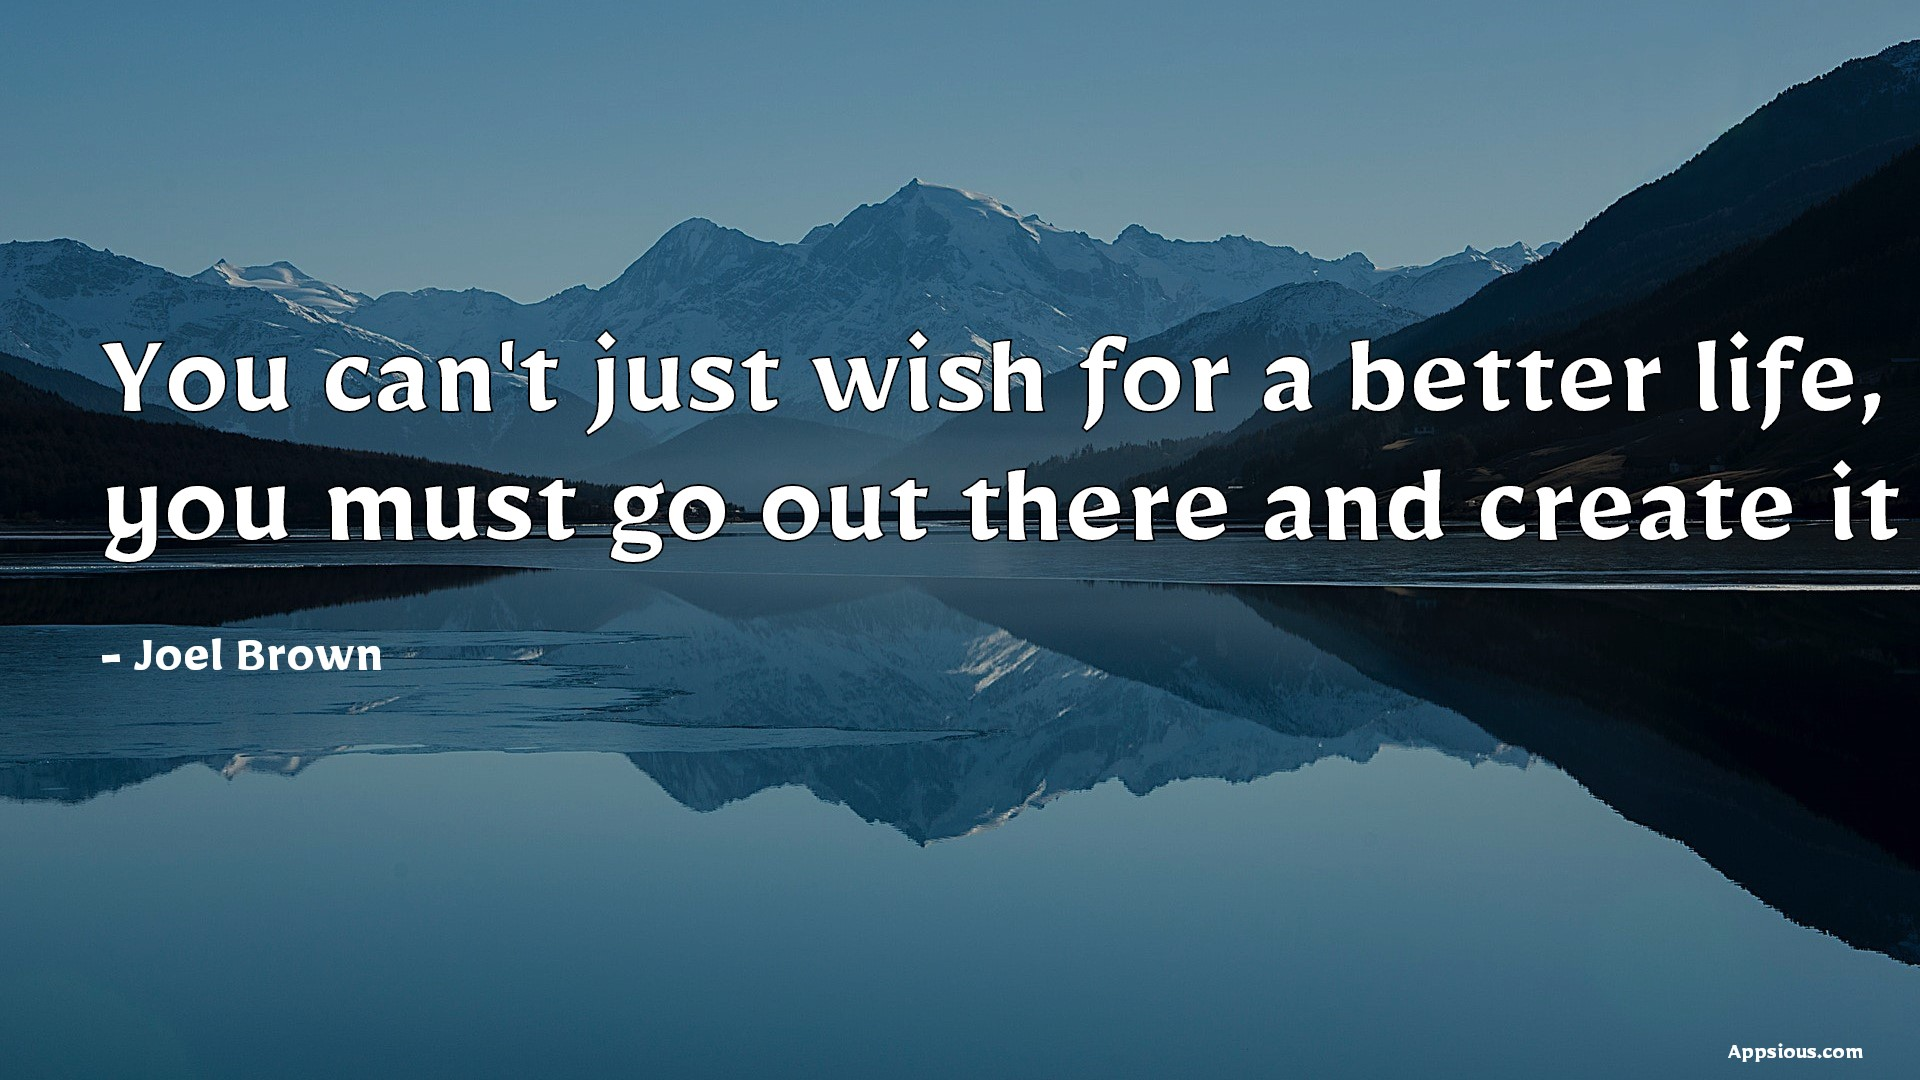 You can't just wish for a better life, you must go out there and create it